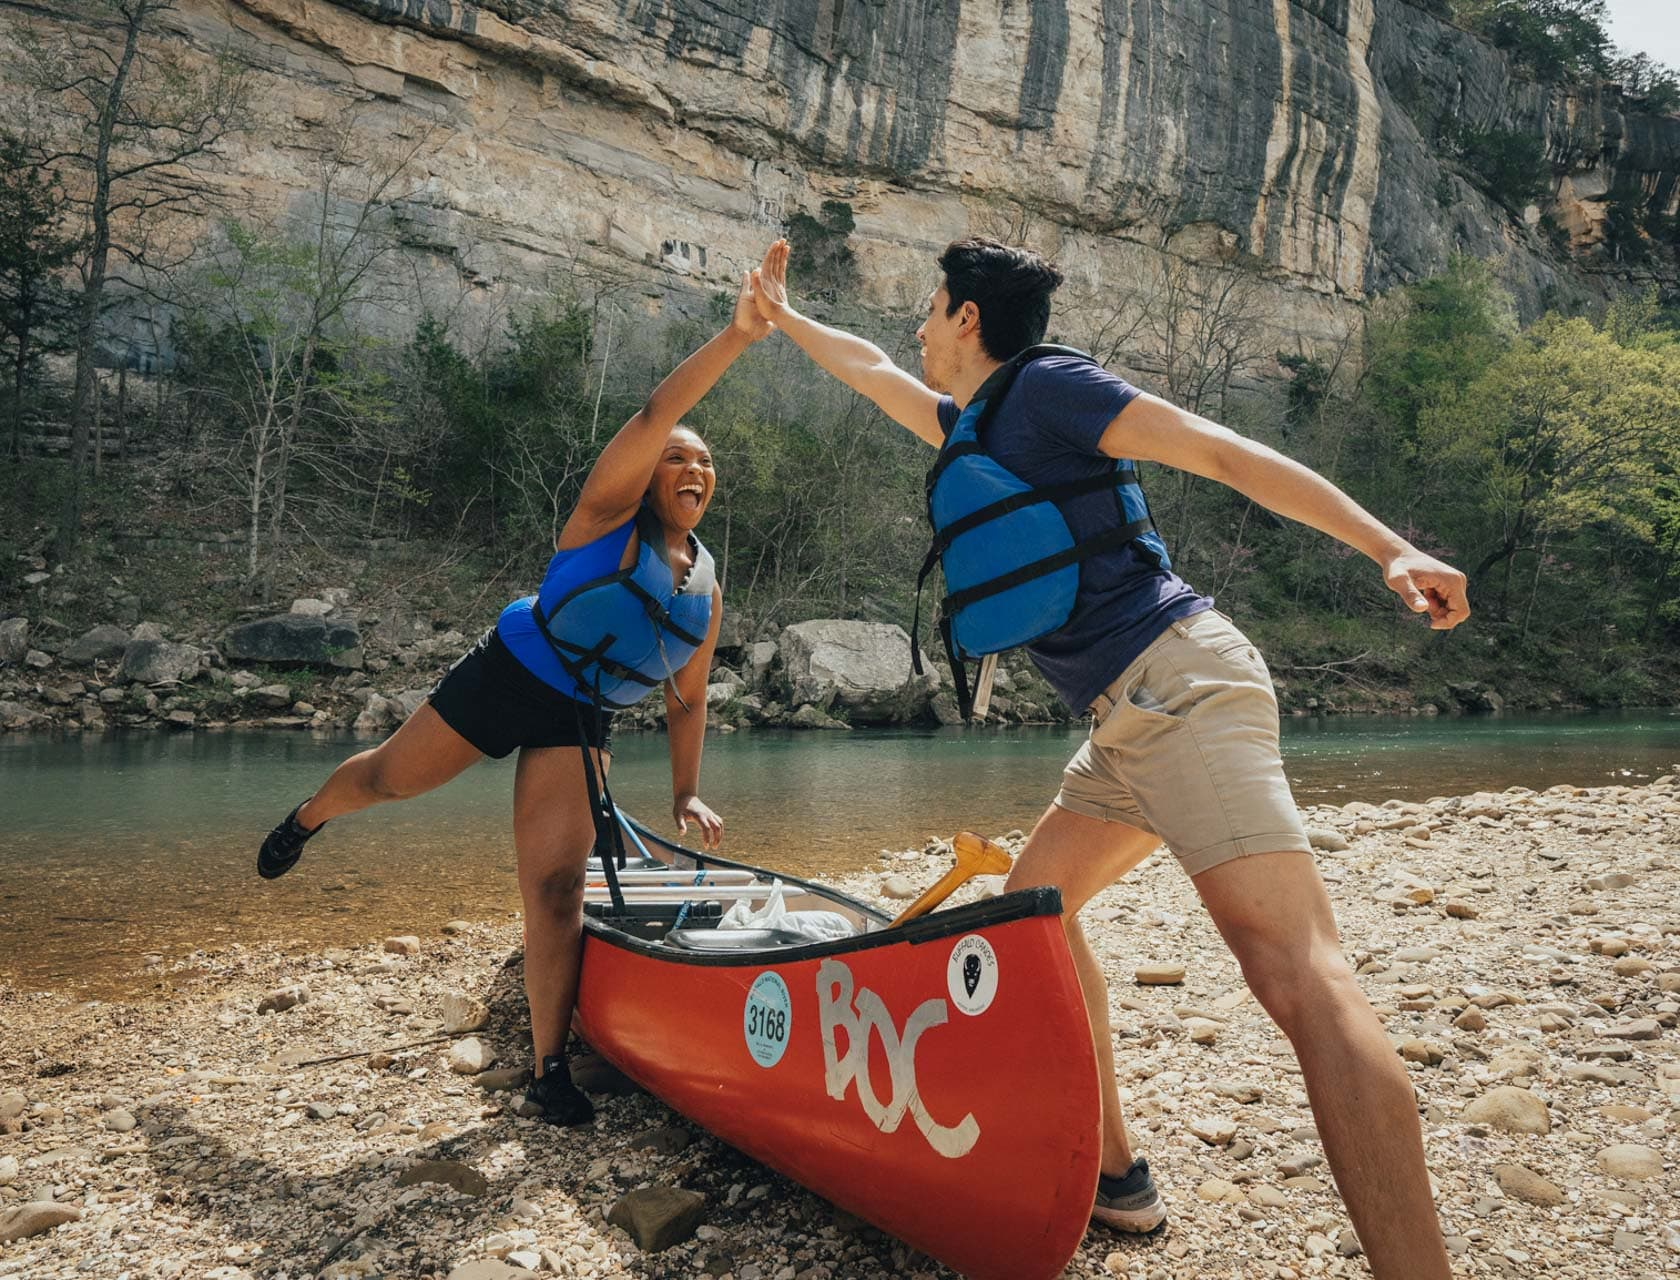 two friends high fiving over a canoe